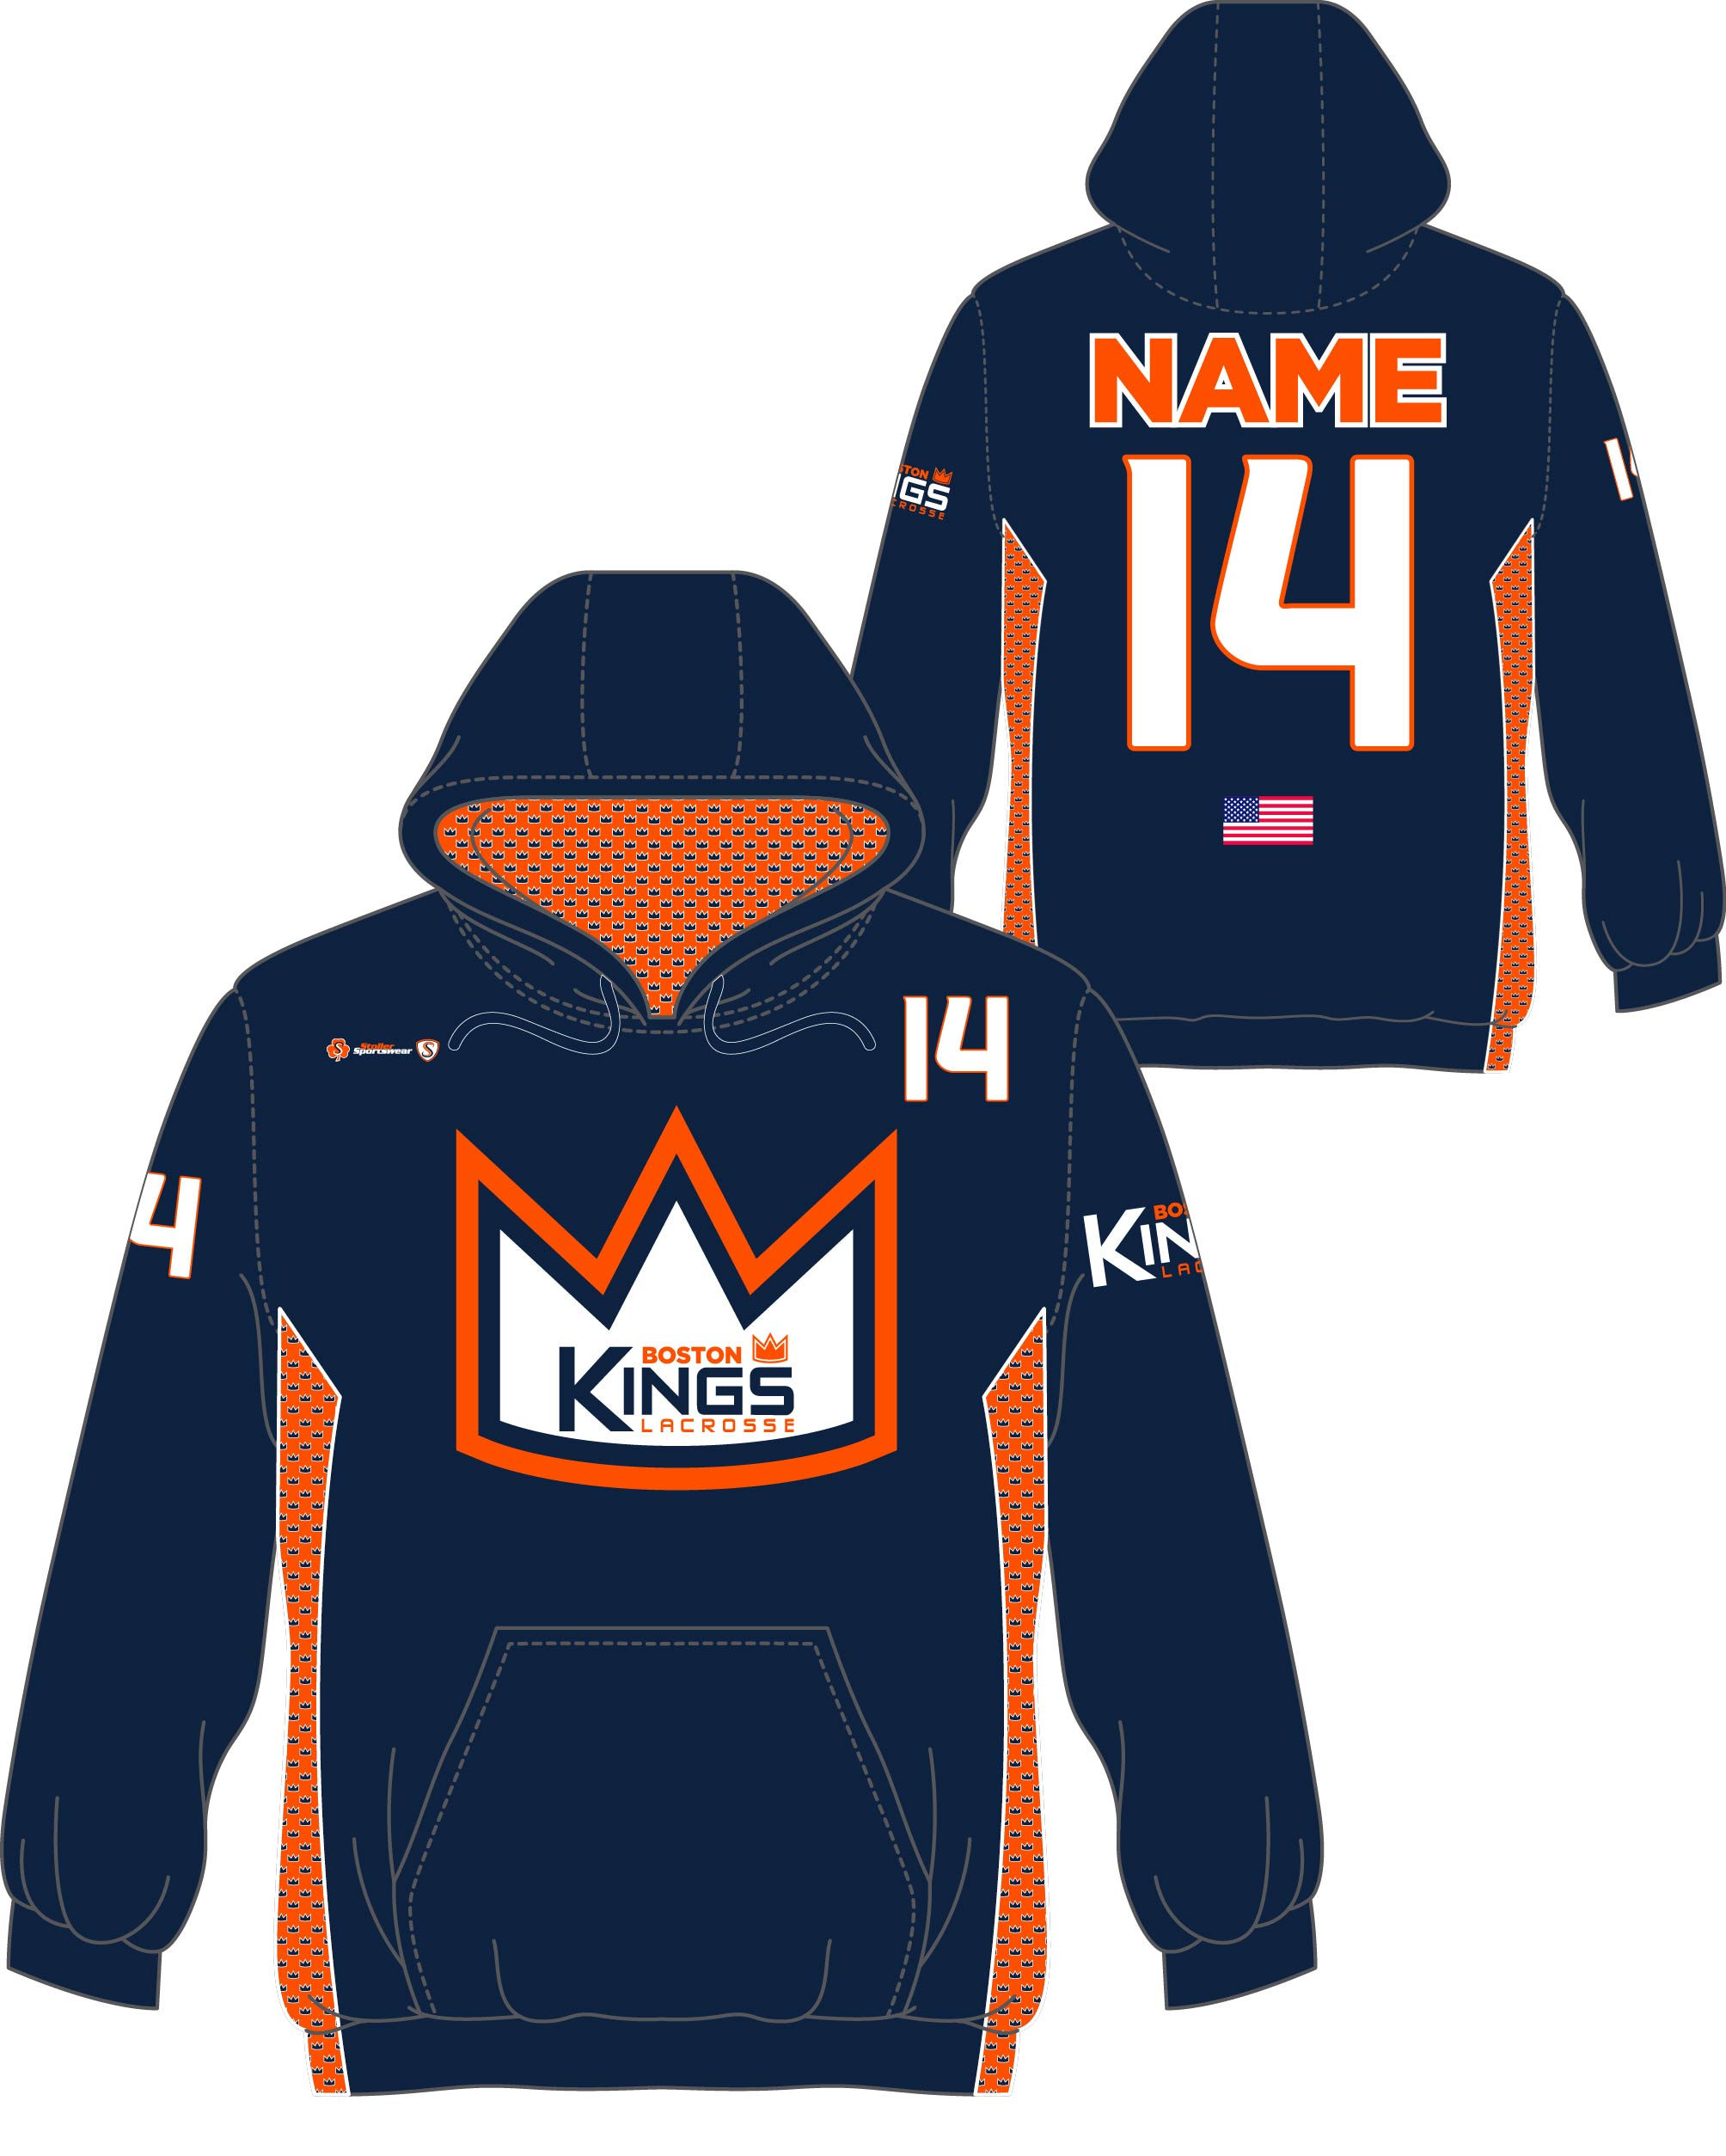 Custom Sublimated Hoodie - Boston Kings